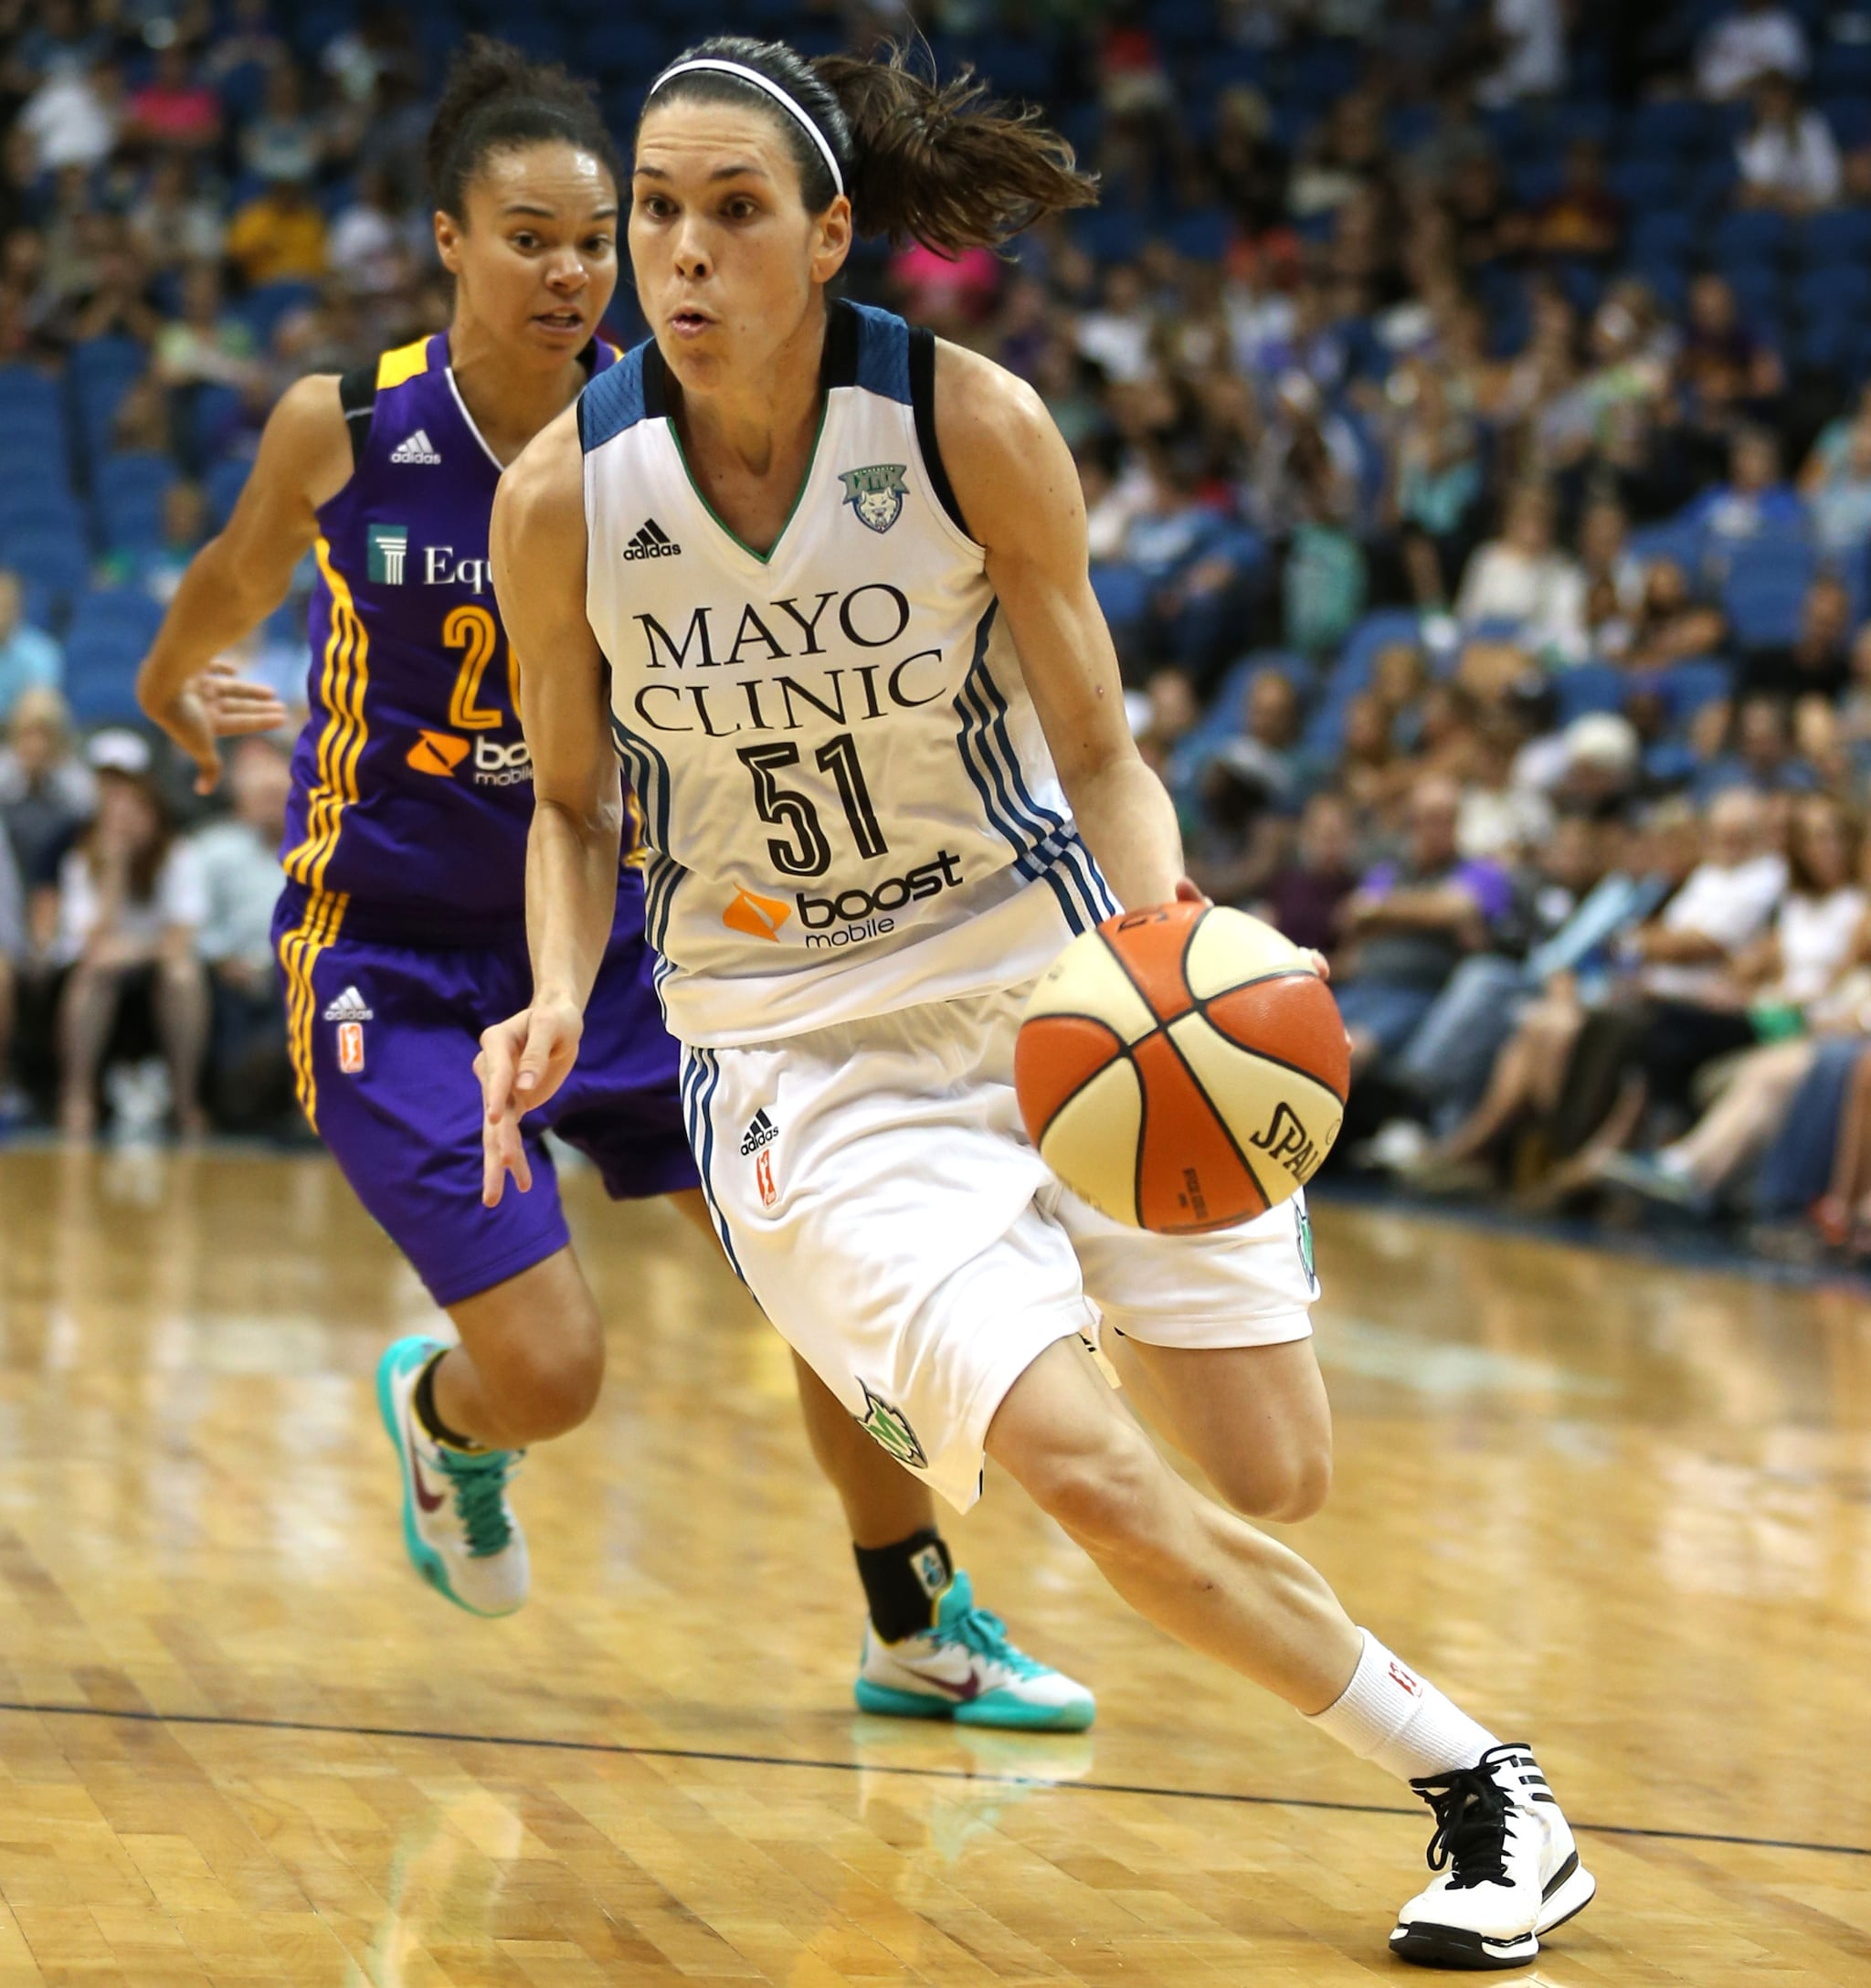 Lynx guard Anna Cruz had a solid all-around game, finishing with five points, five rebounds and four assists. Cruz left the game late in the fourth quarter due to an ankle injury, but the injury is not believed to be serious.